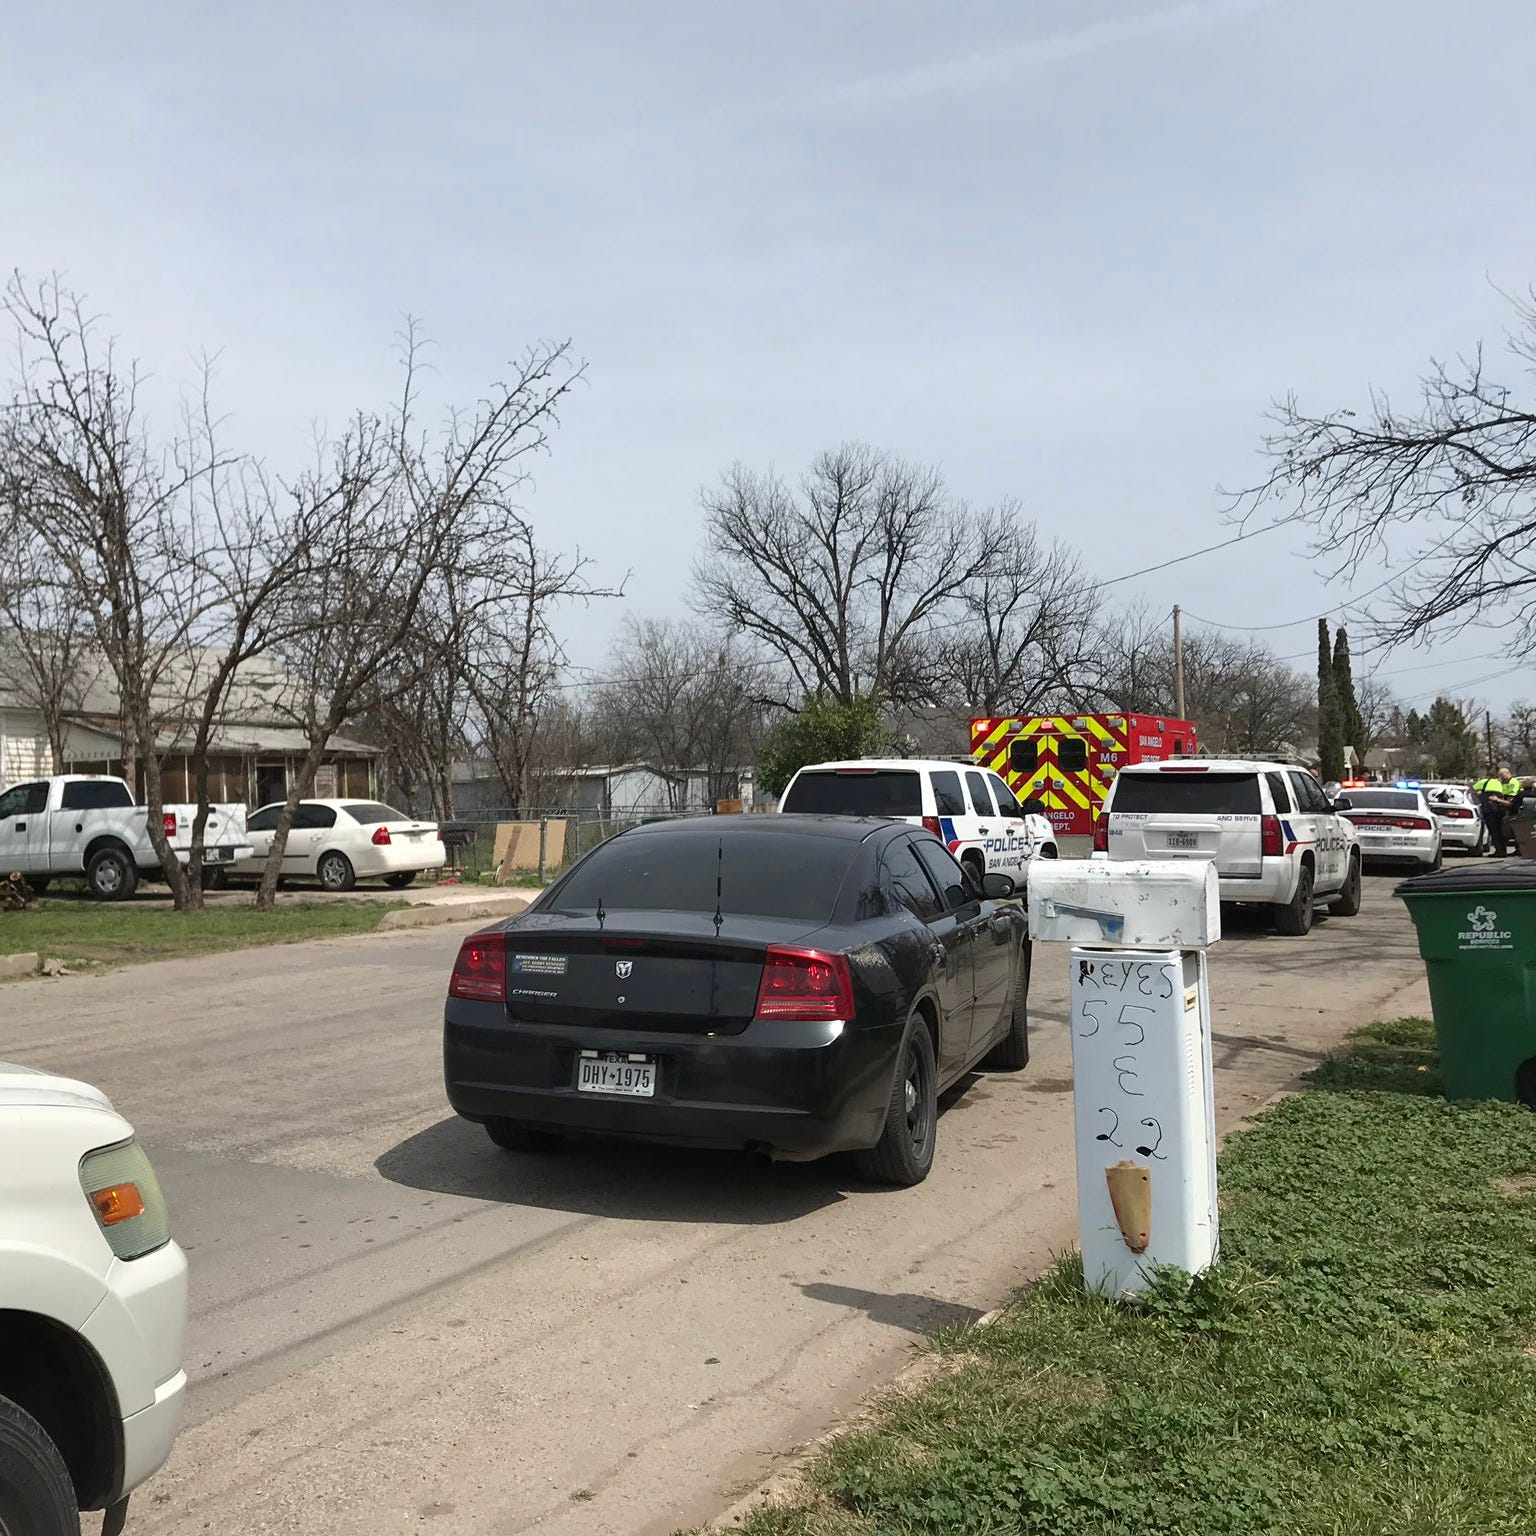 UPDATE: Officer injured after responding to unwanted subject at San Angelo residence